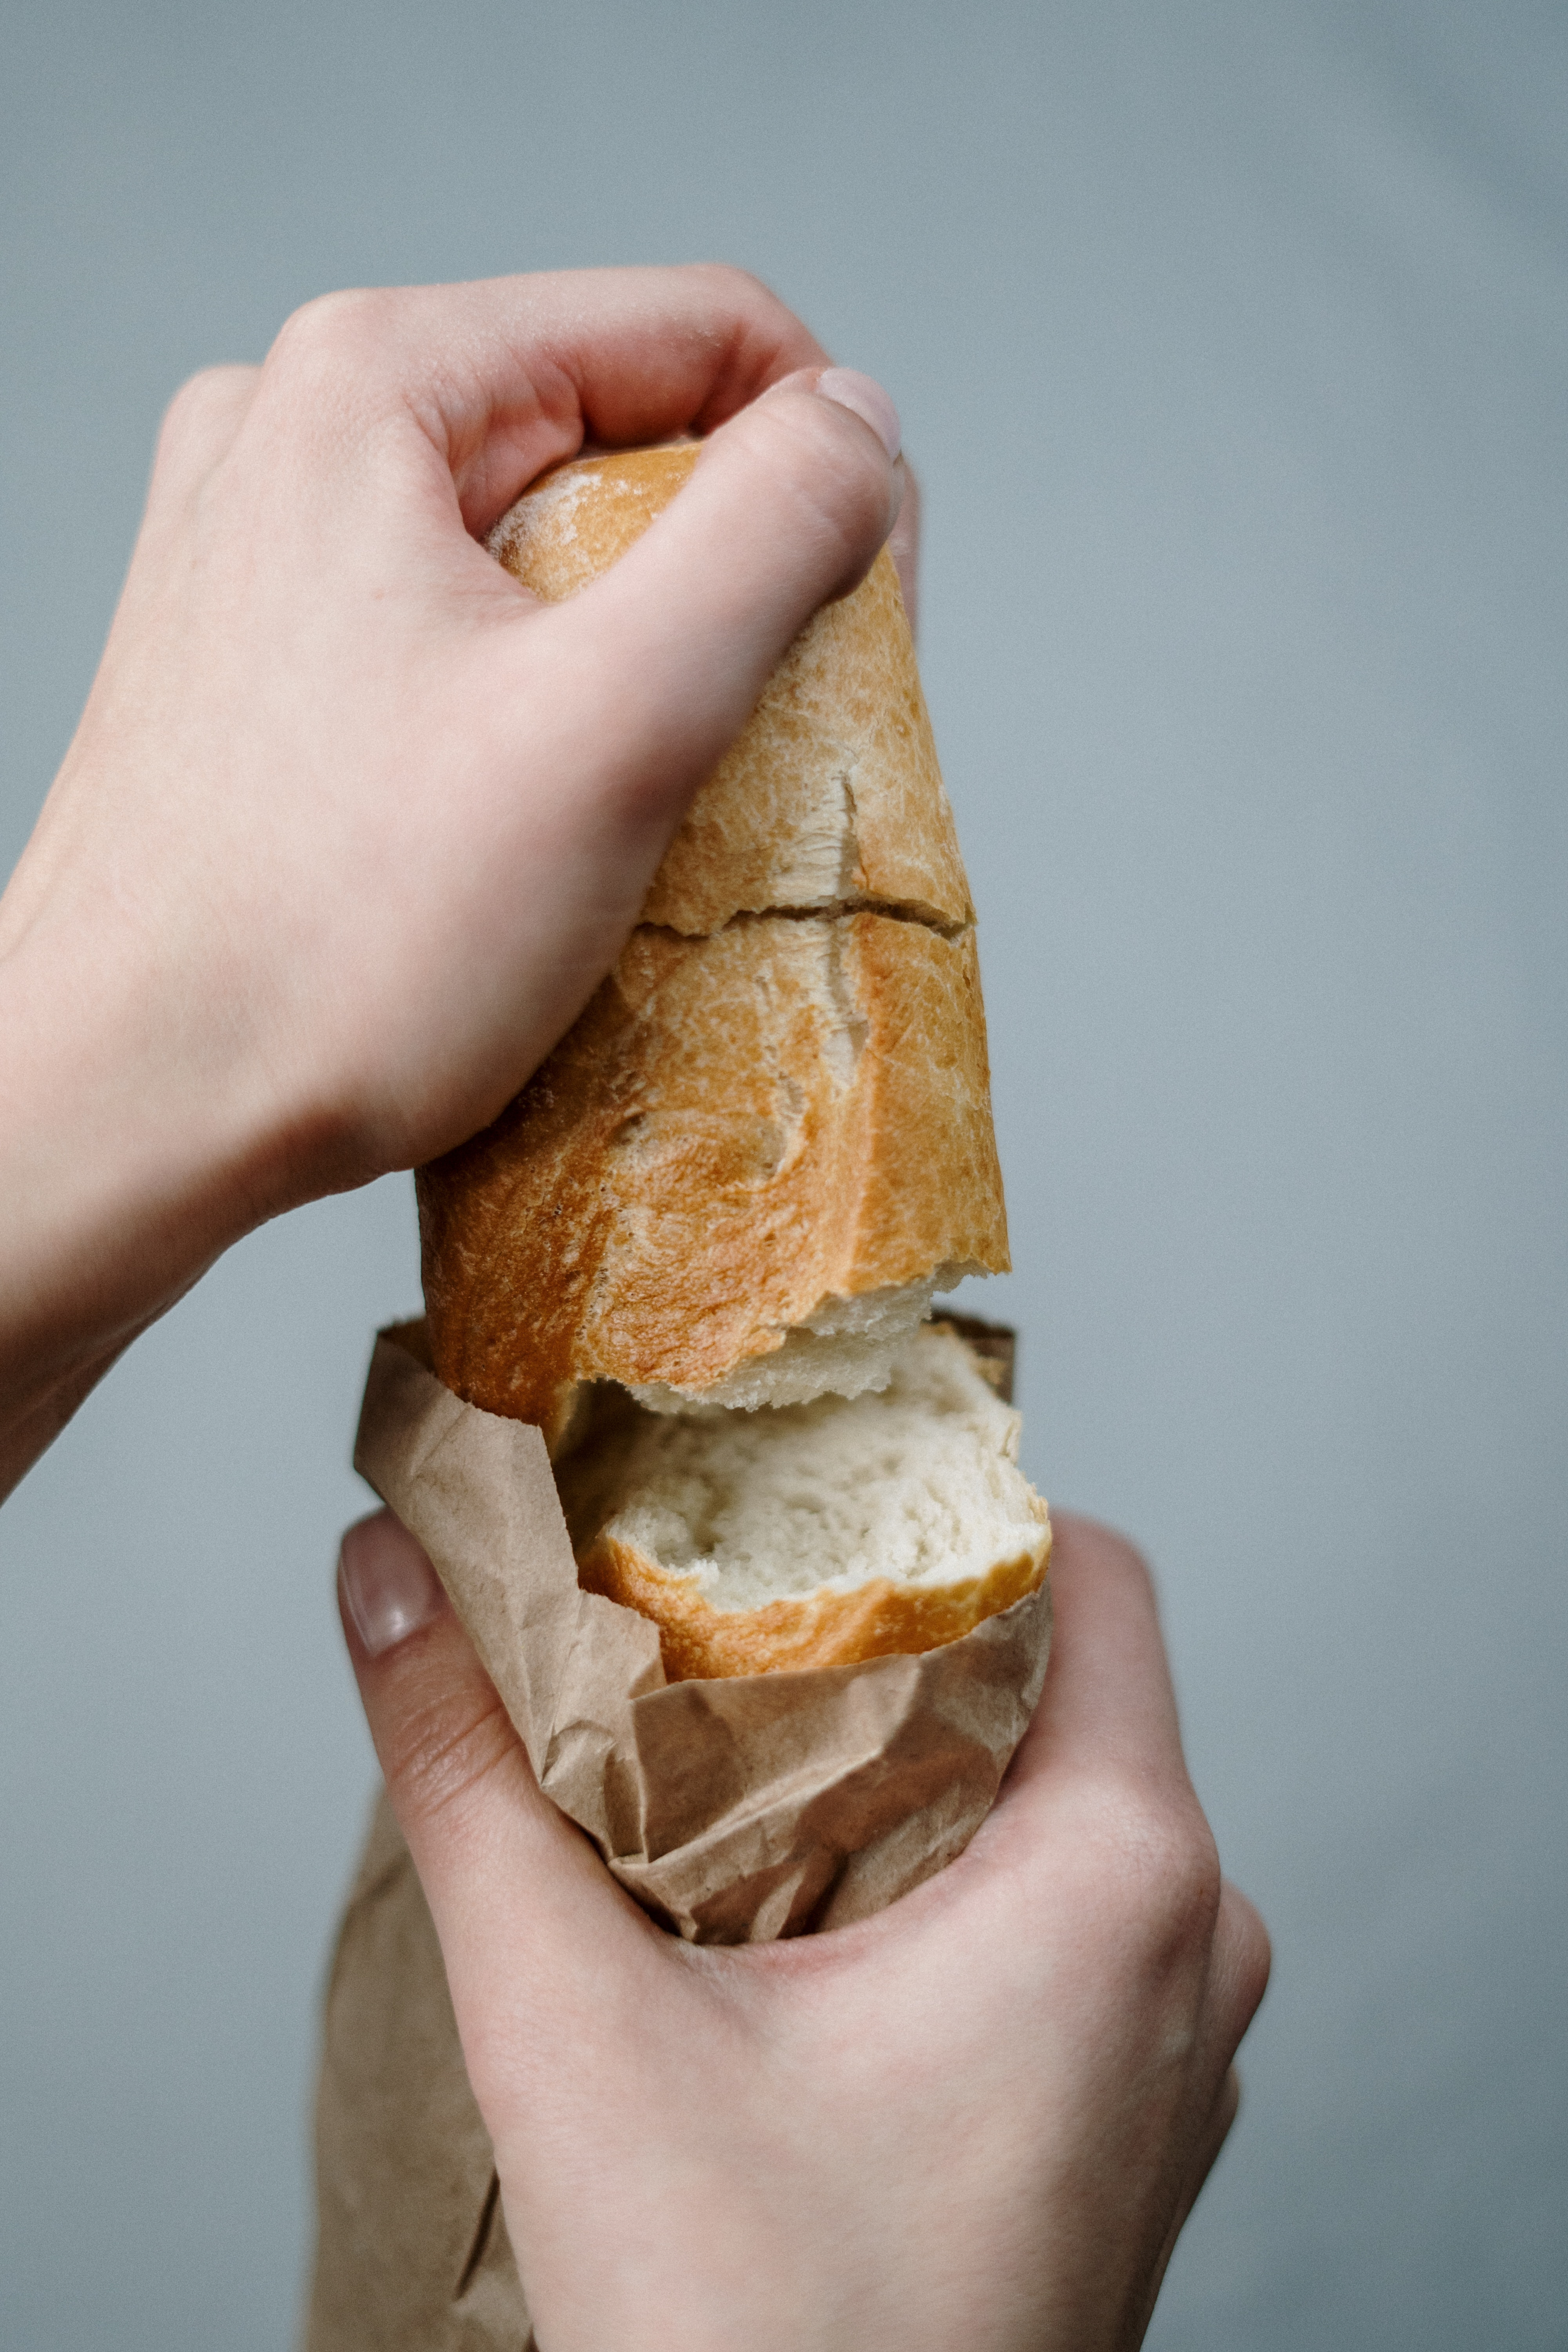 Carbohydrates - Bread